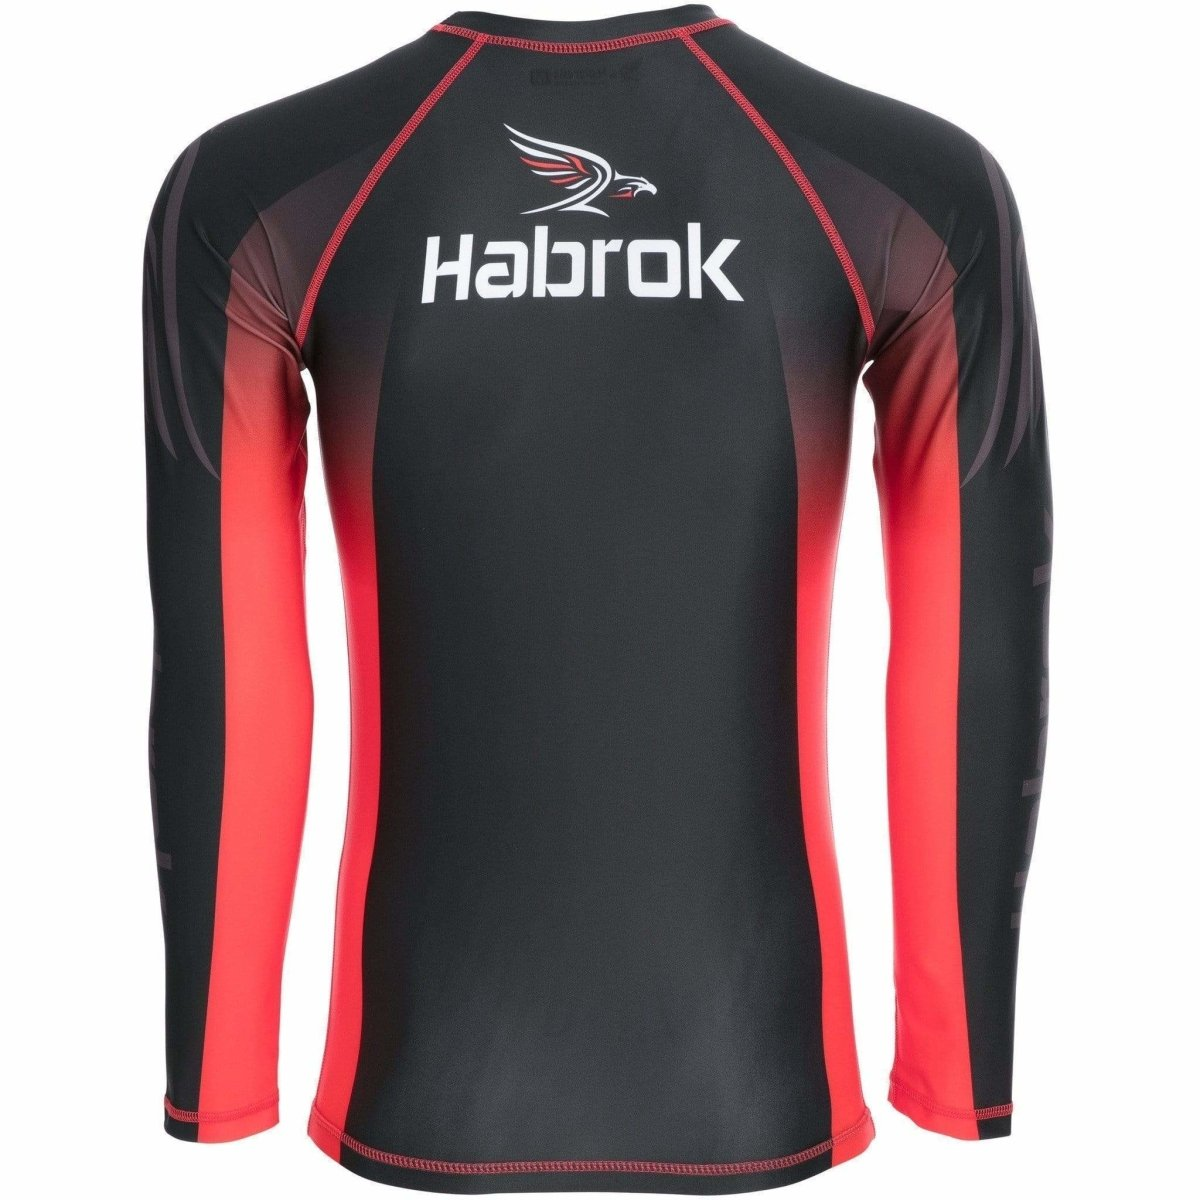 Habrok Rash Guard Elite Rash Guard  | Men Elite Rash Guard | Athletes | Habrok